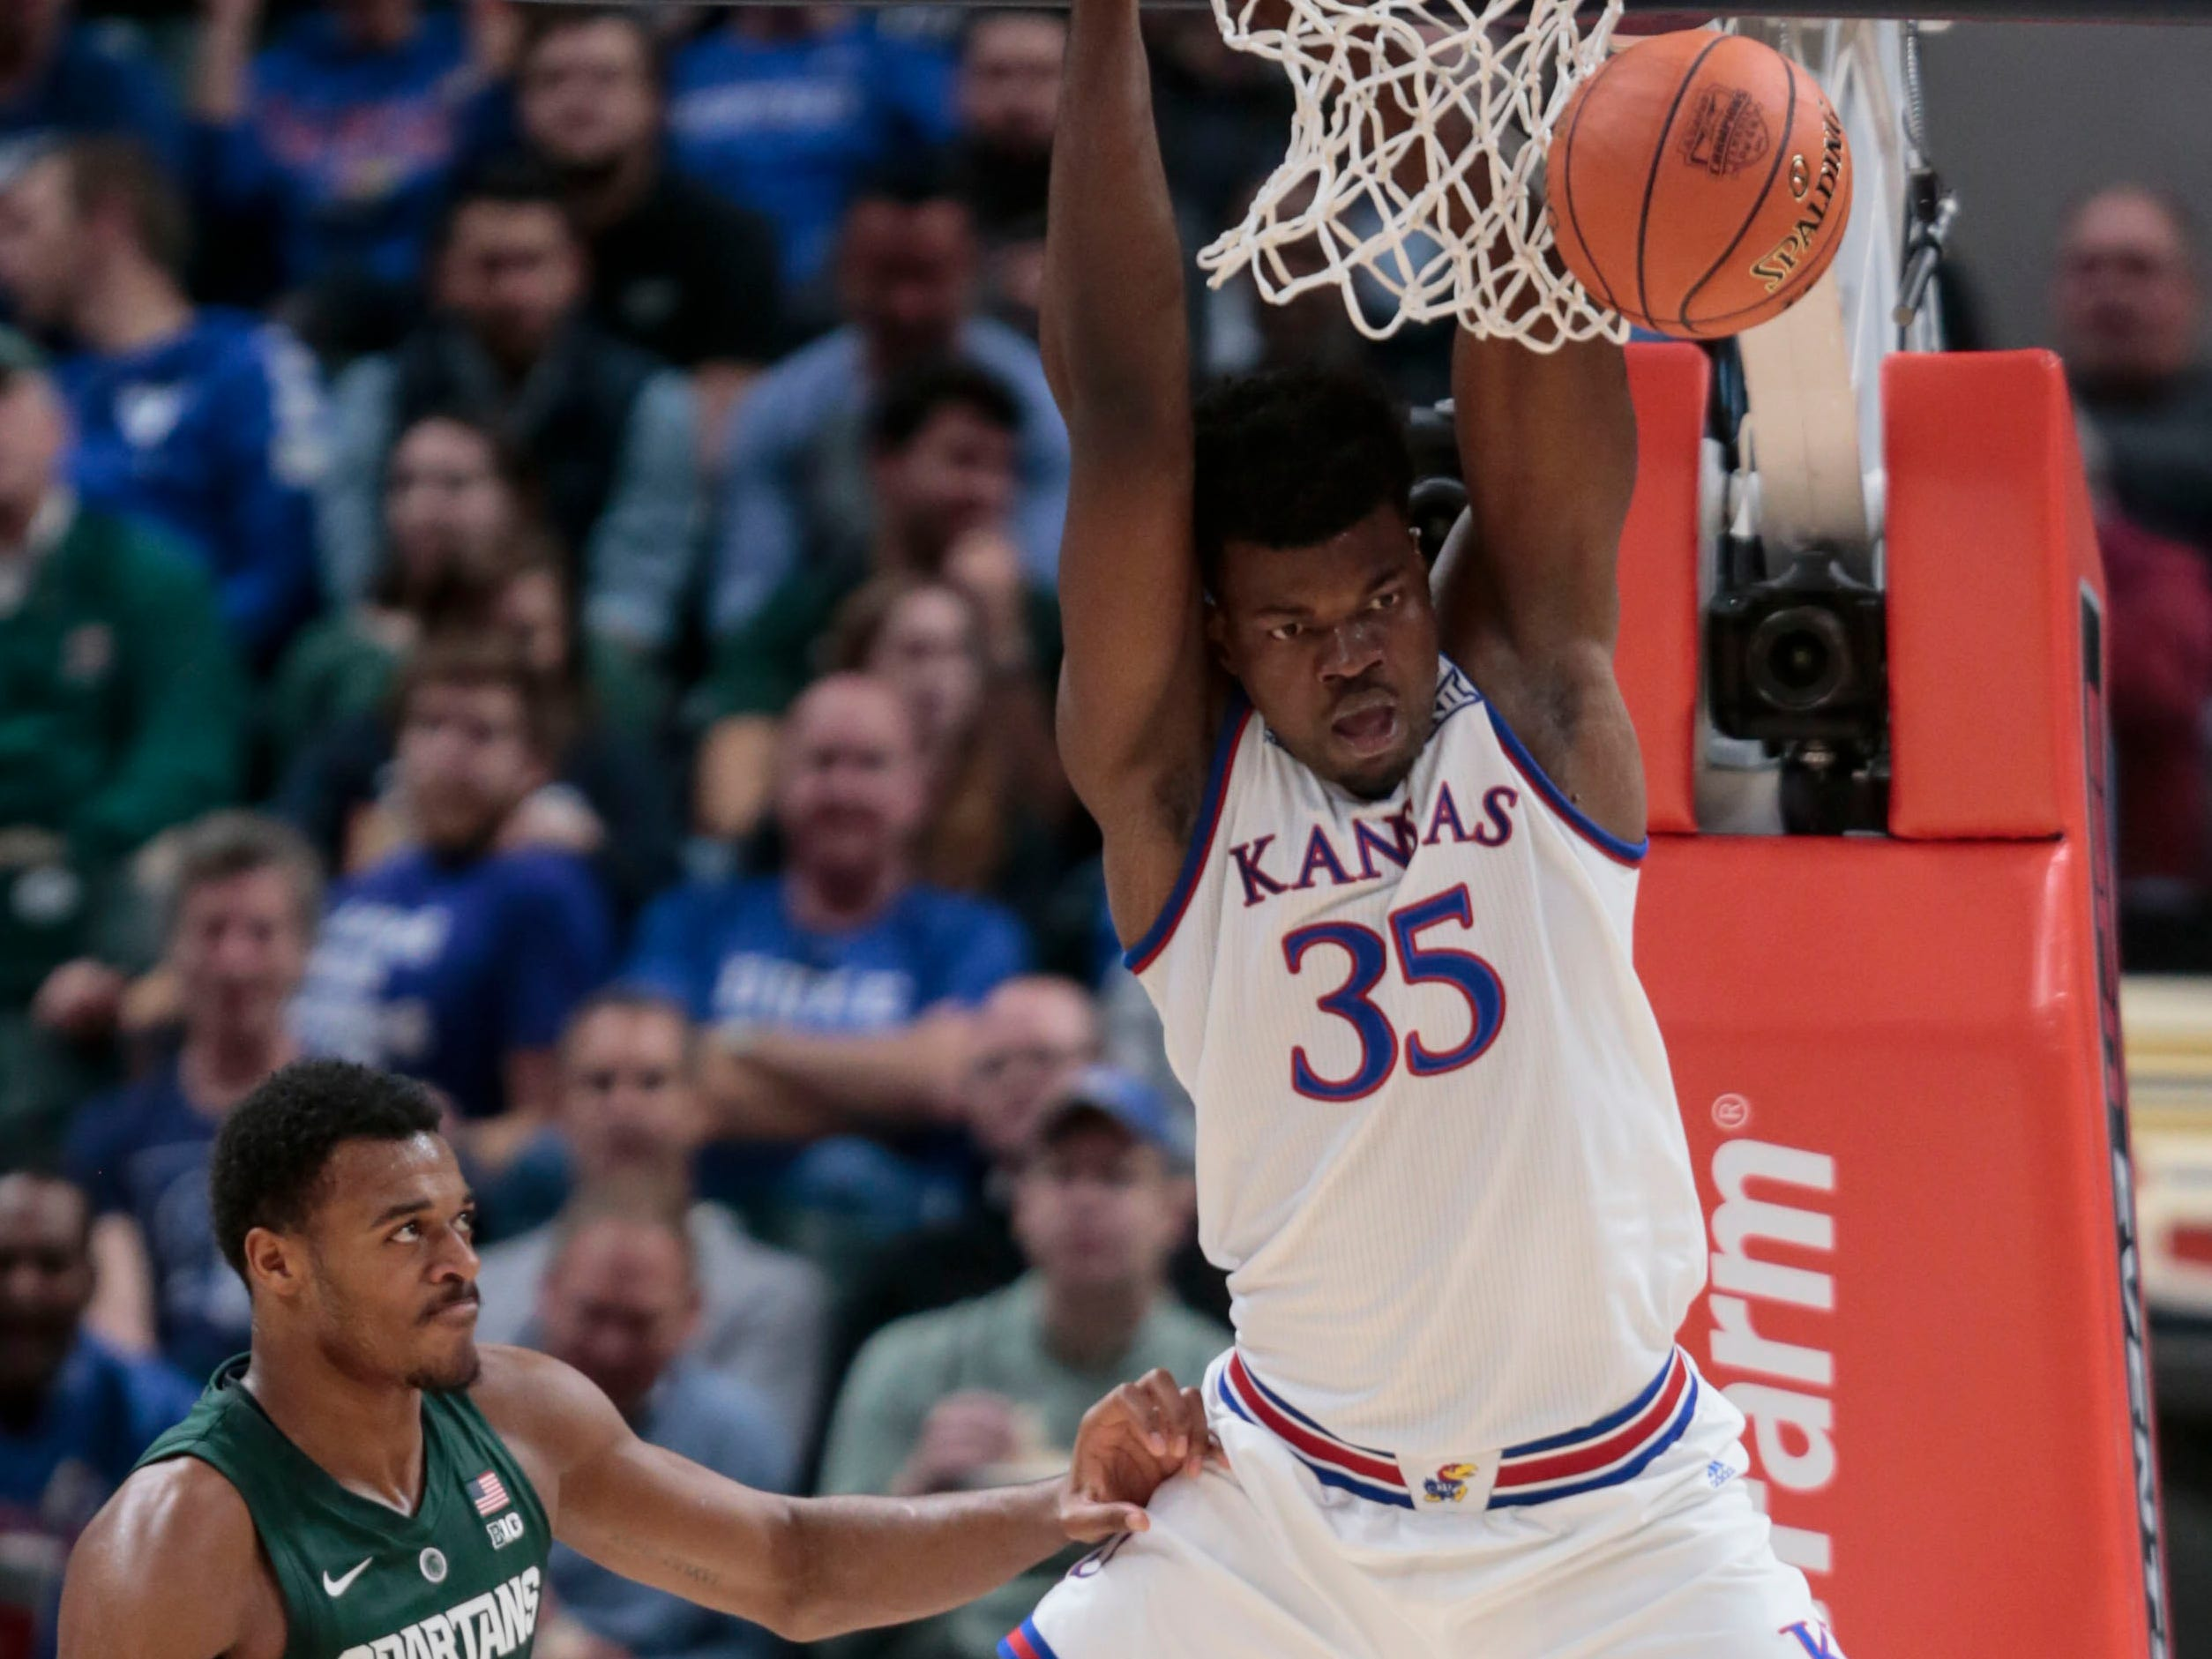 Kansas center Udoka Azubuike (35) dunks in front of Michigan State forward Xavier Tillman during the first half of an NCAA college basketball game at the Champions Classic in Indianapolis on Tuesday, Nov. 6, 2018.